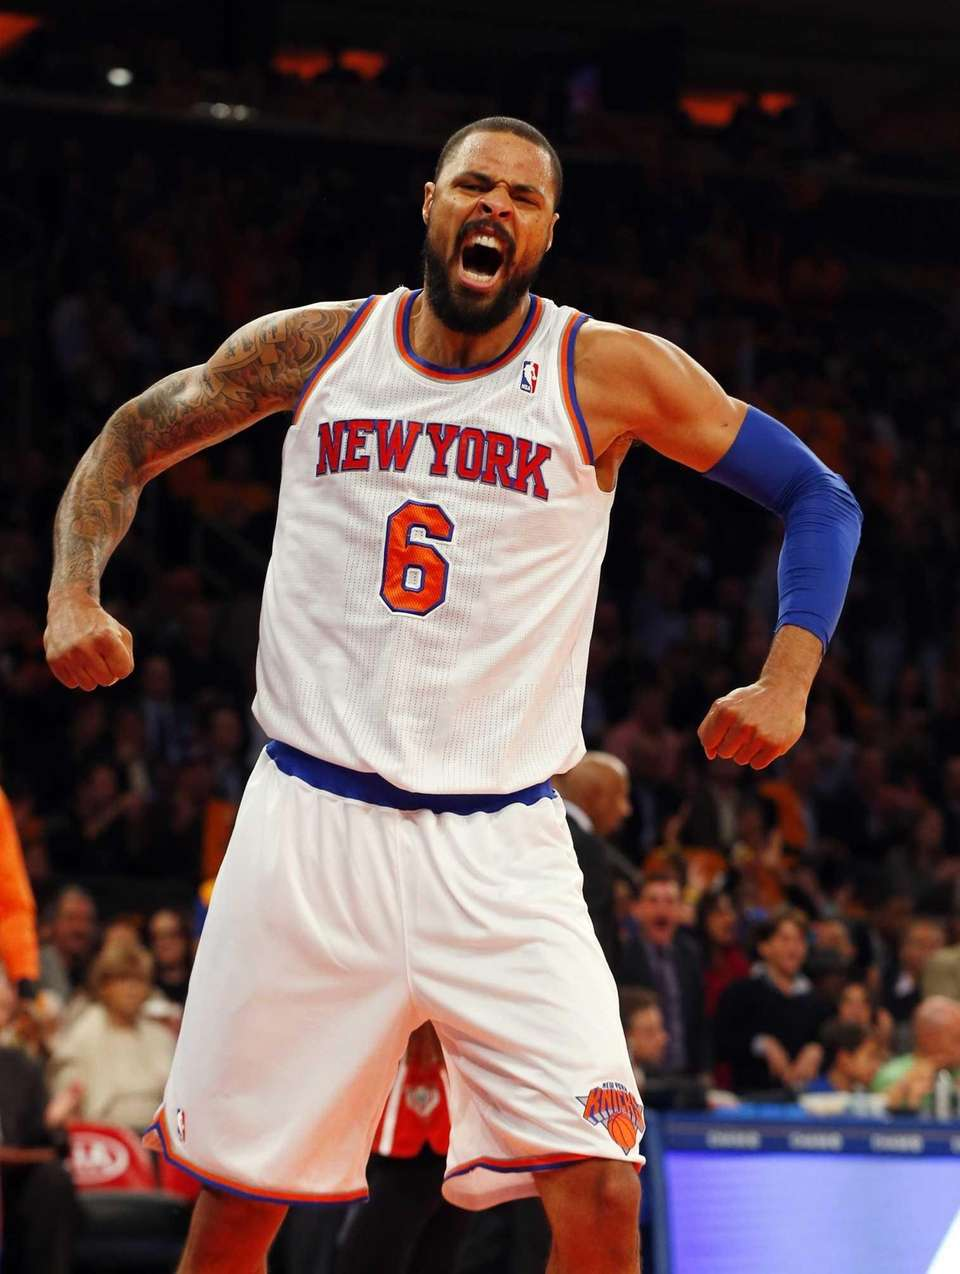 Tyson Chandler of the Knicks reacts after his